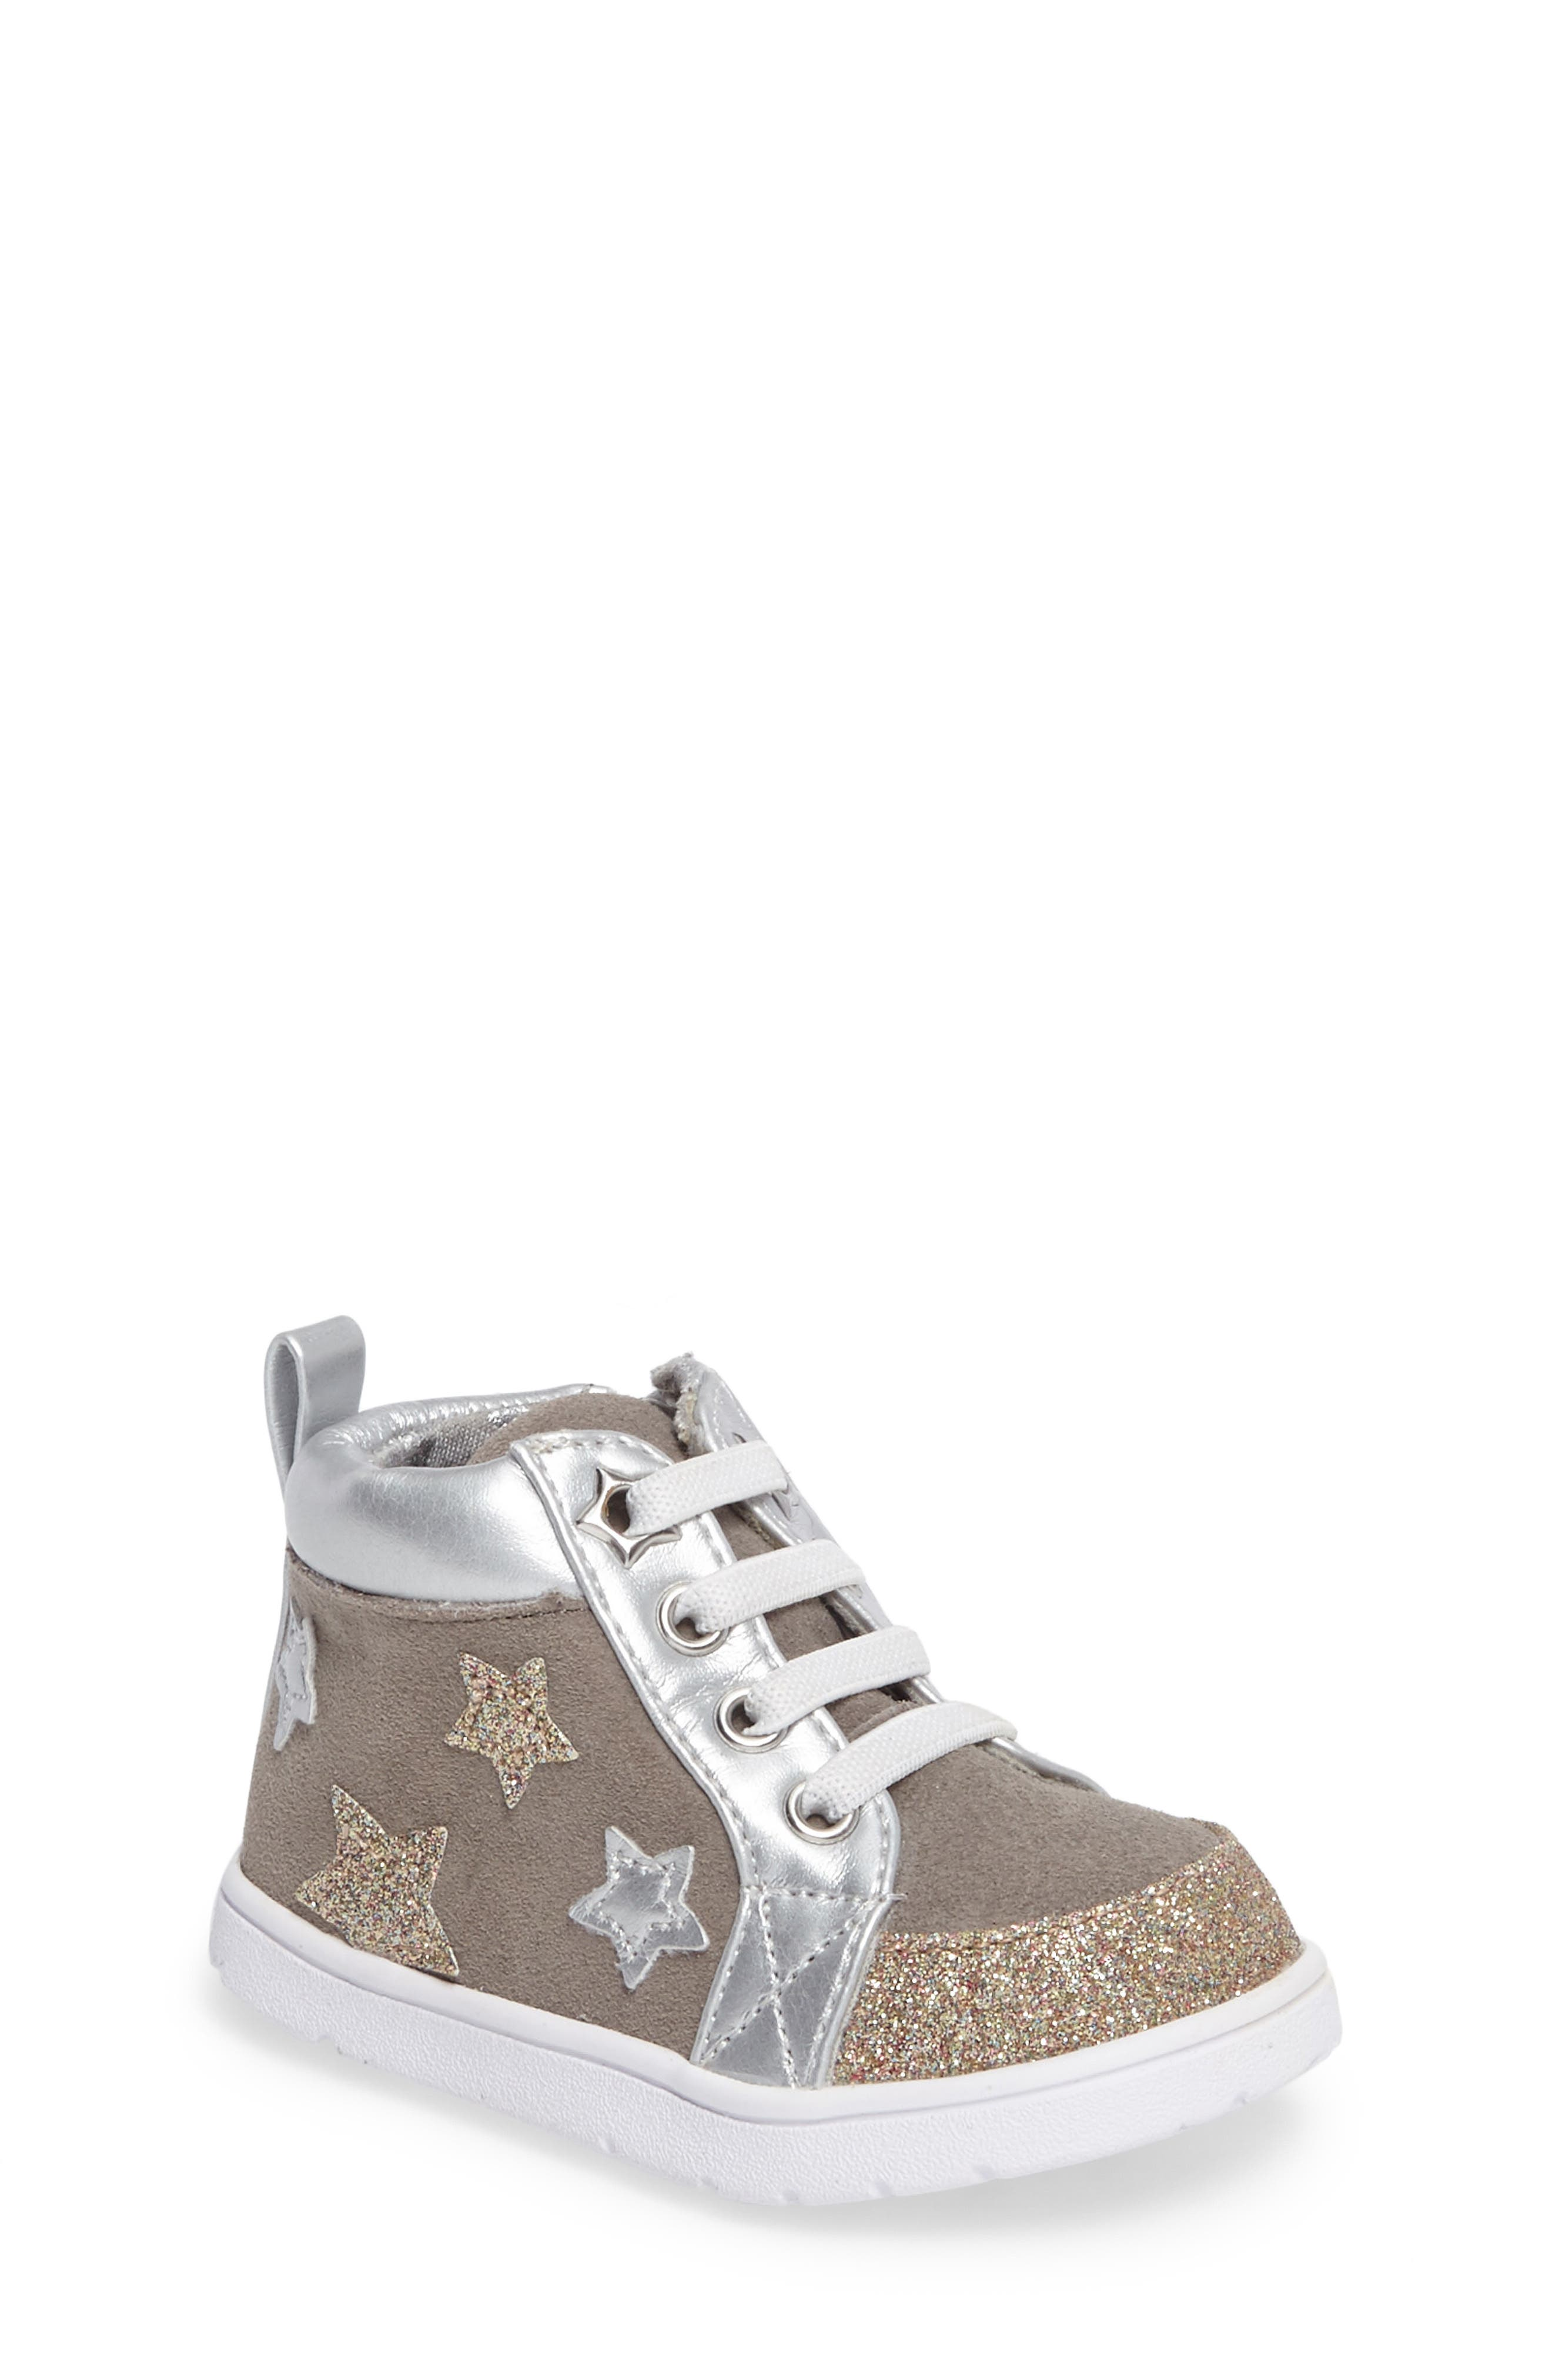 Diantha Star Appliqué High Top Sneaker,                             Main thumbnail 1, color,                             Grey Leather